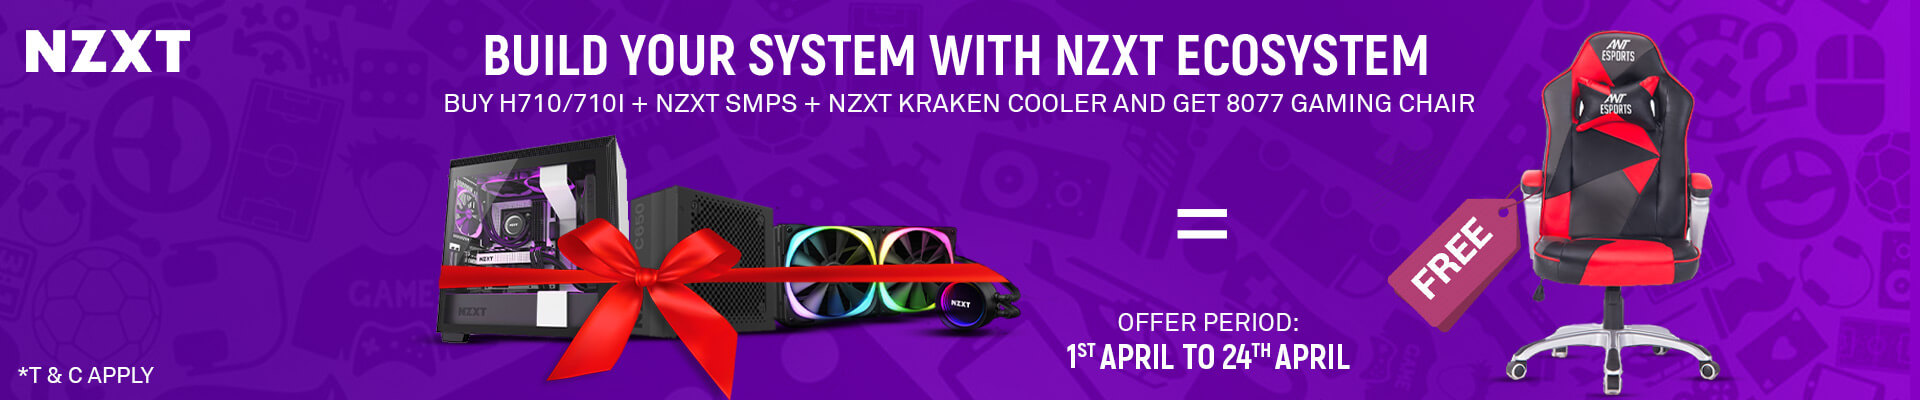 NZXT Combo Offer